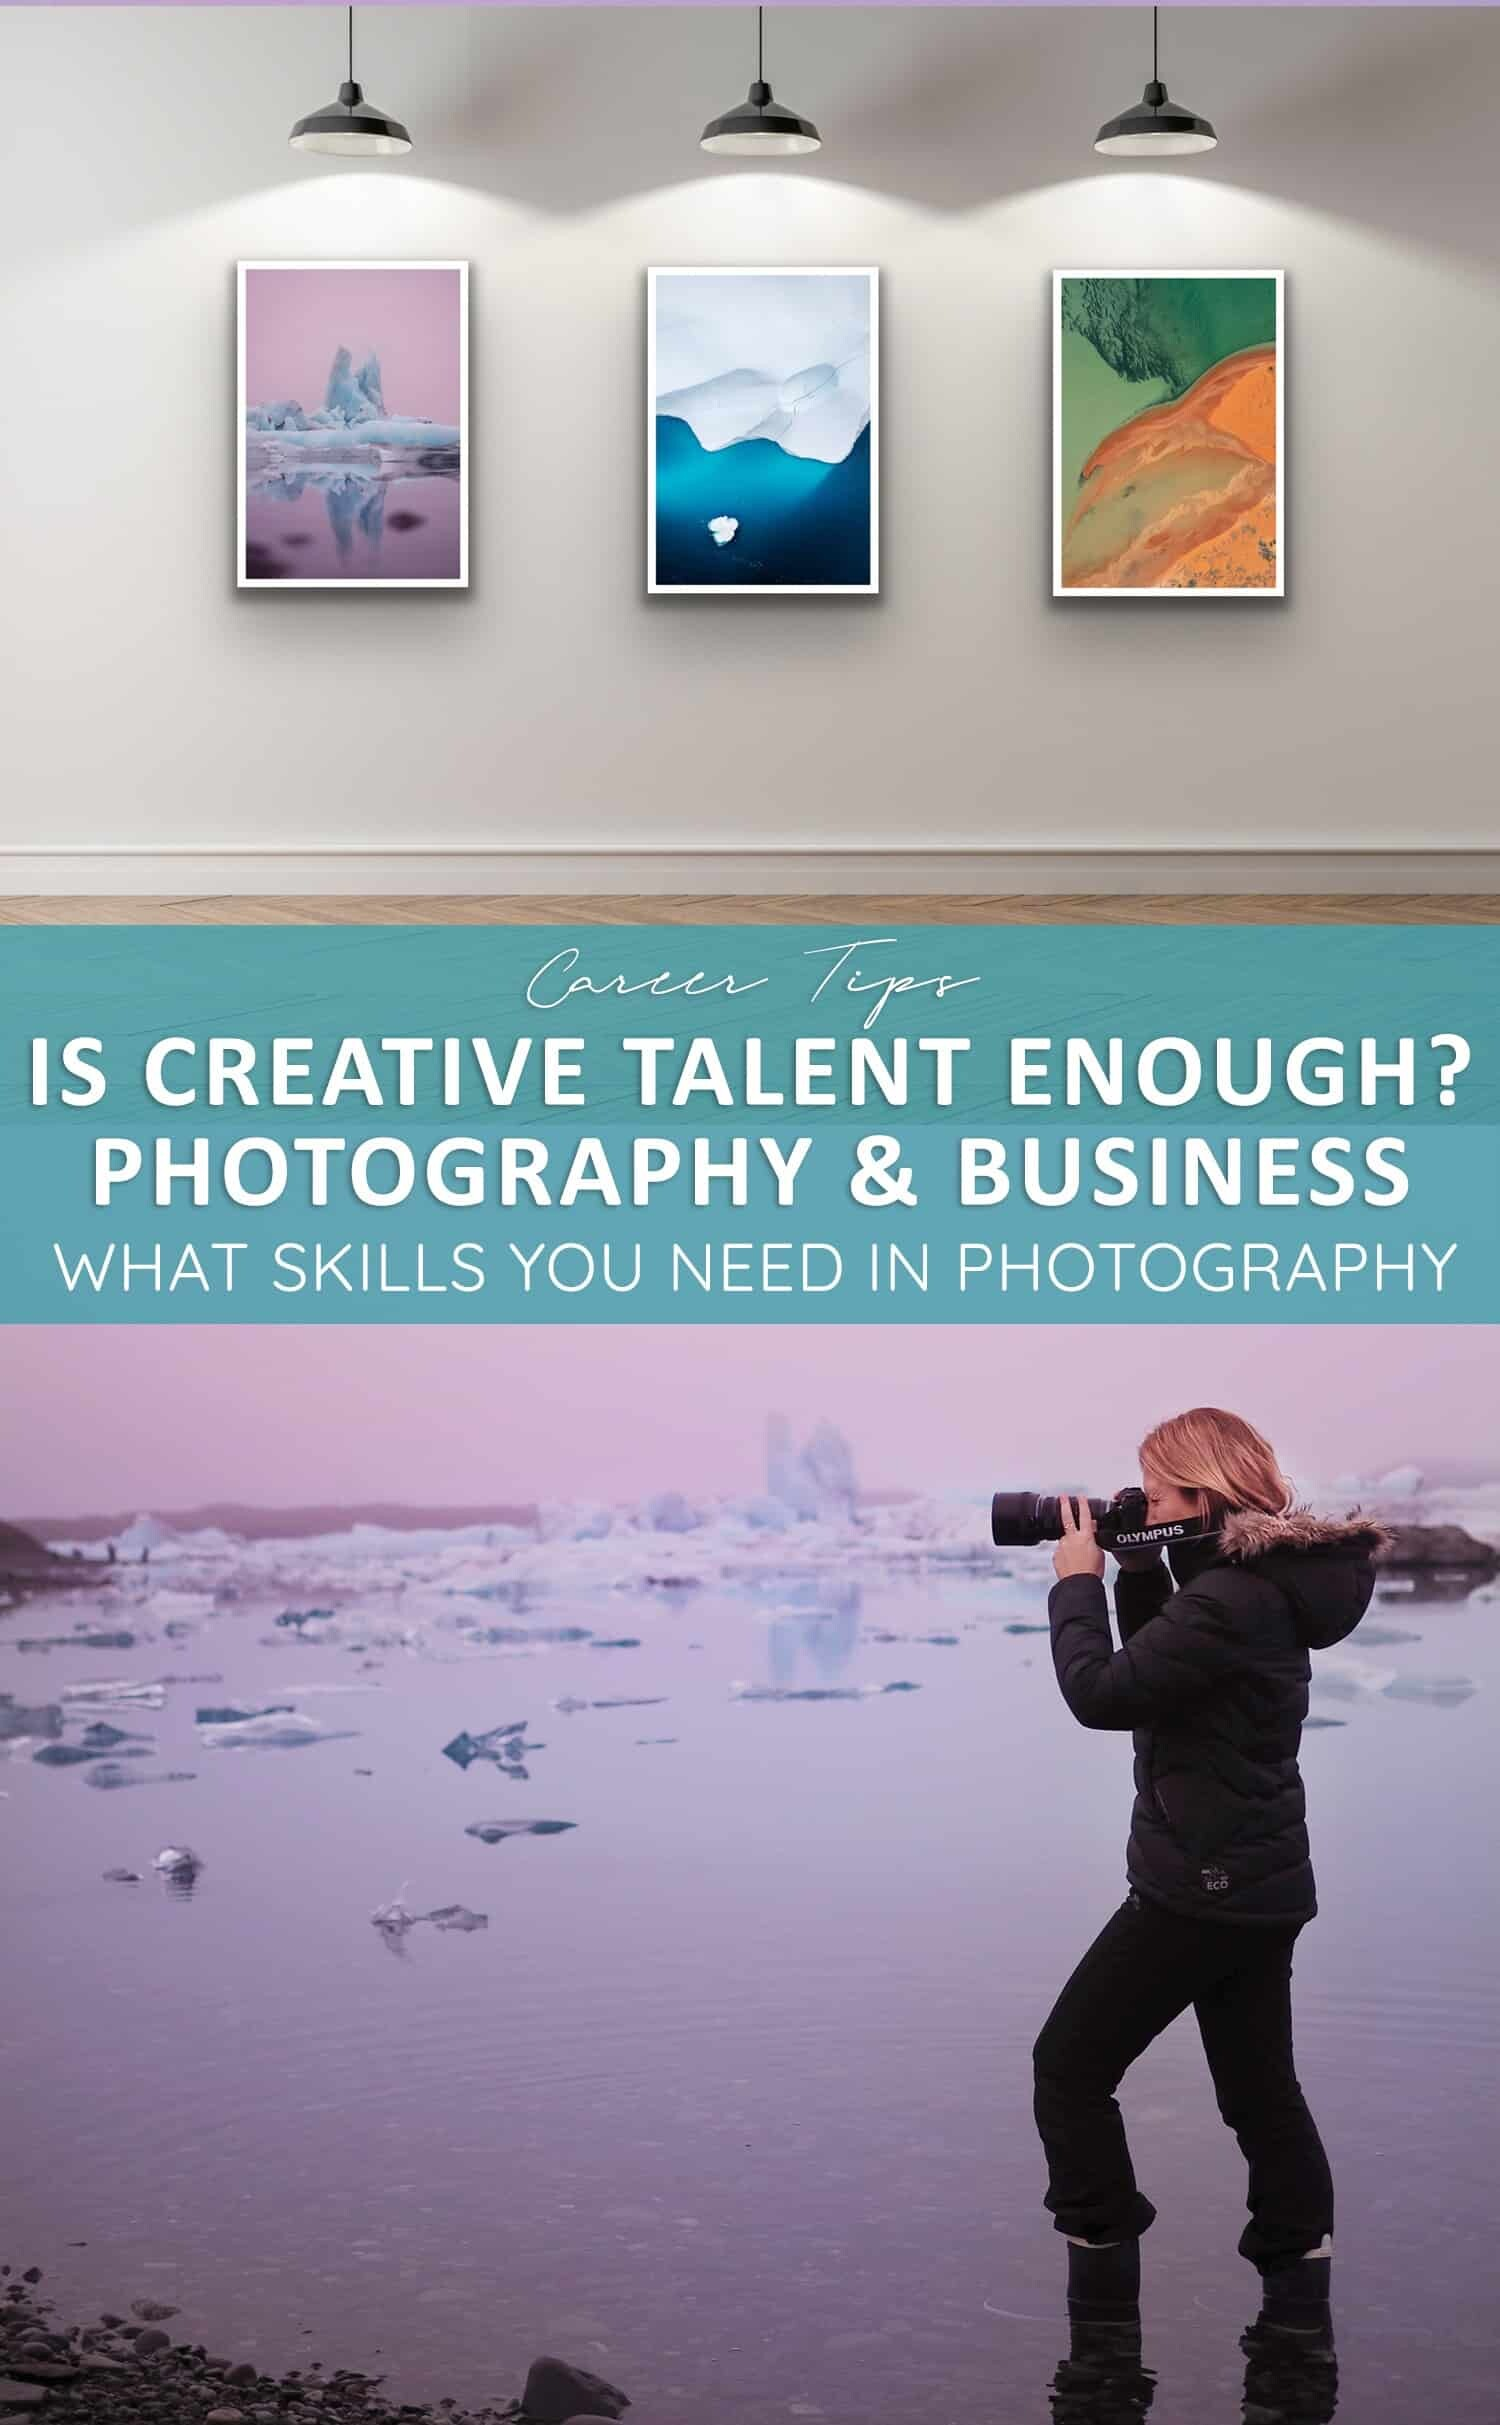 The Business of Photography - What skills you need to be a photographer